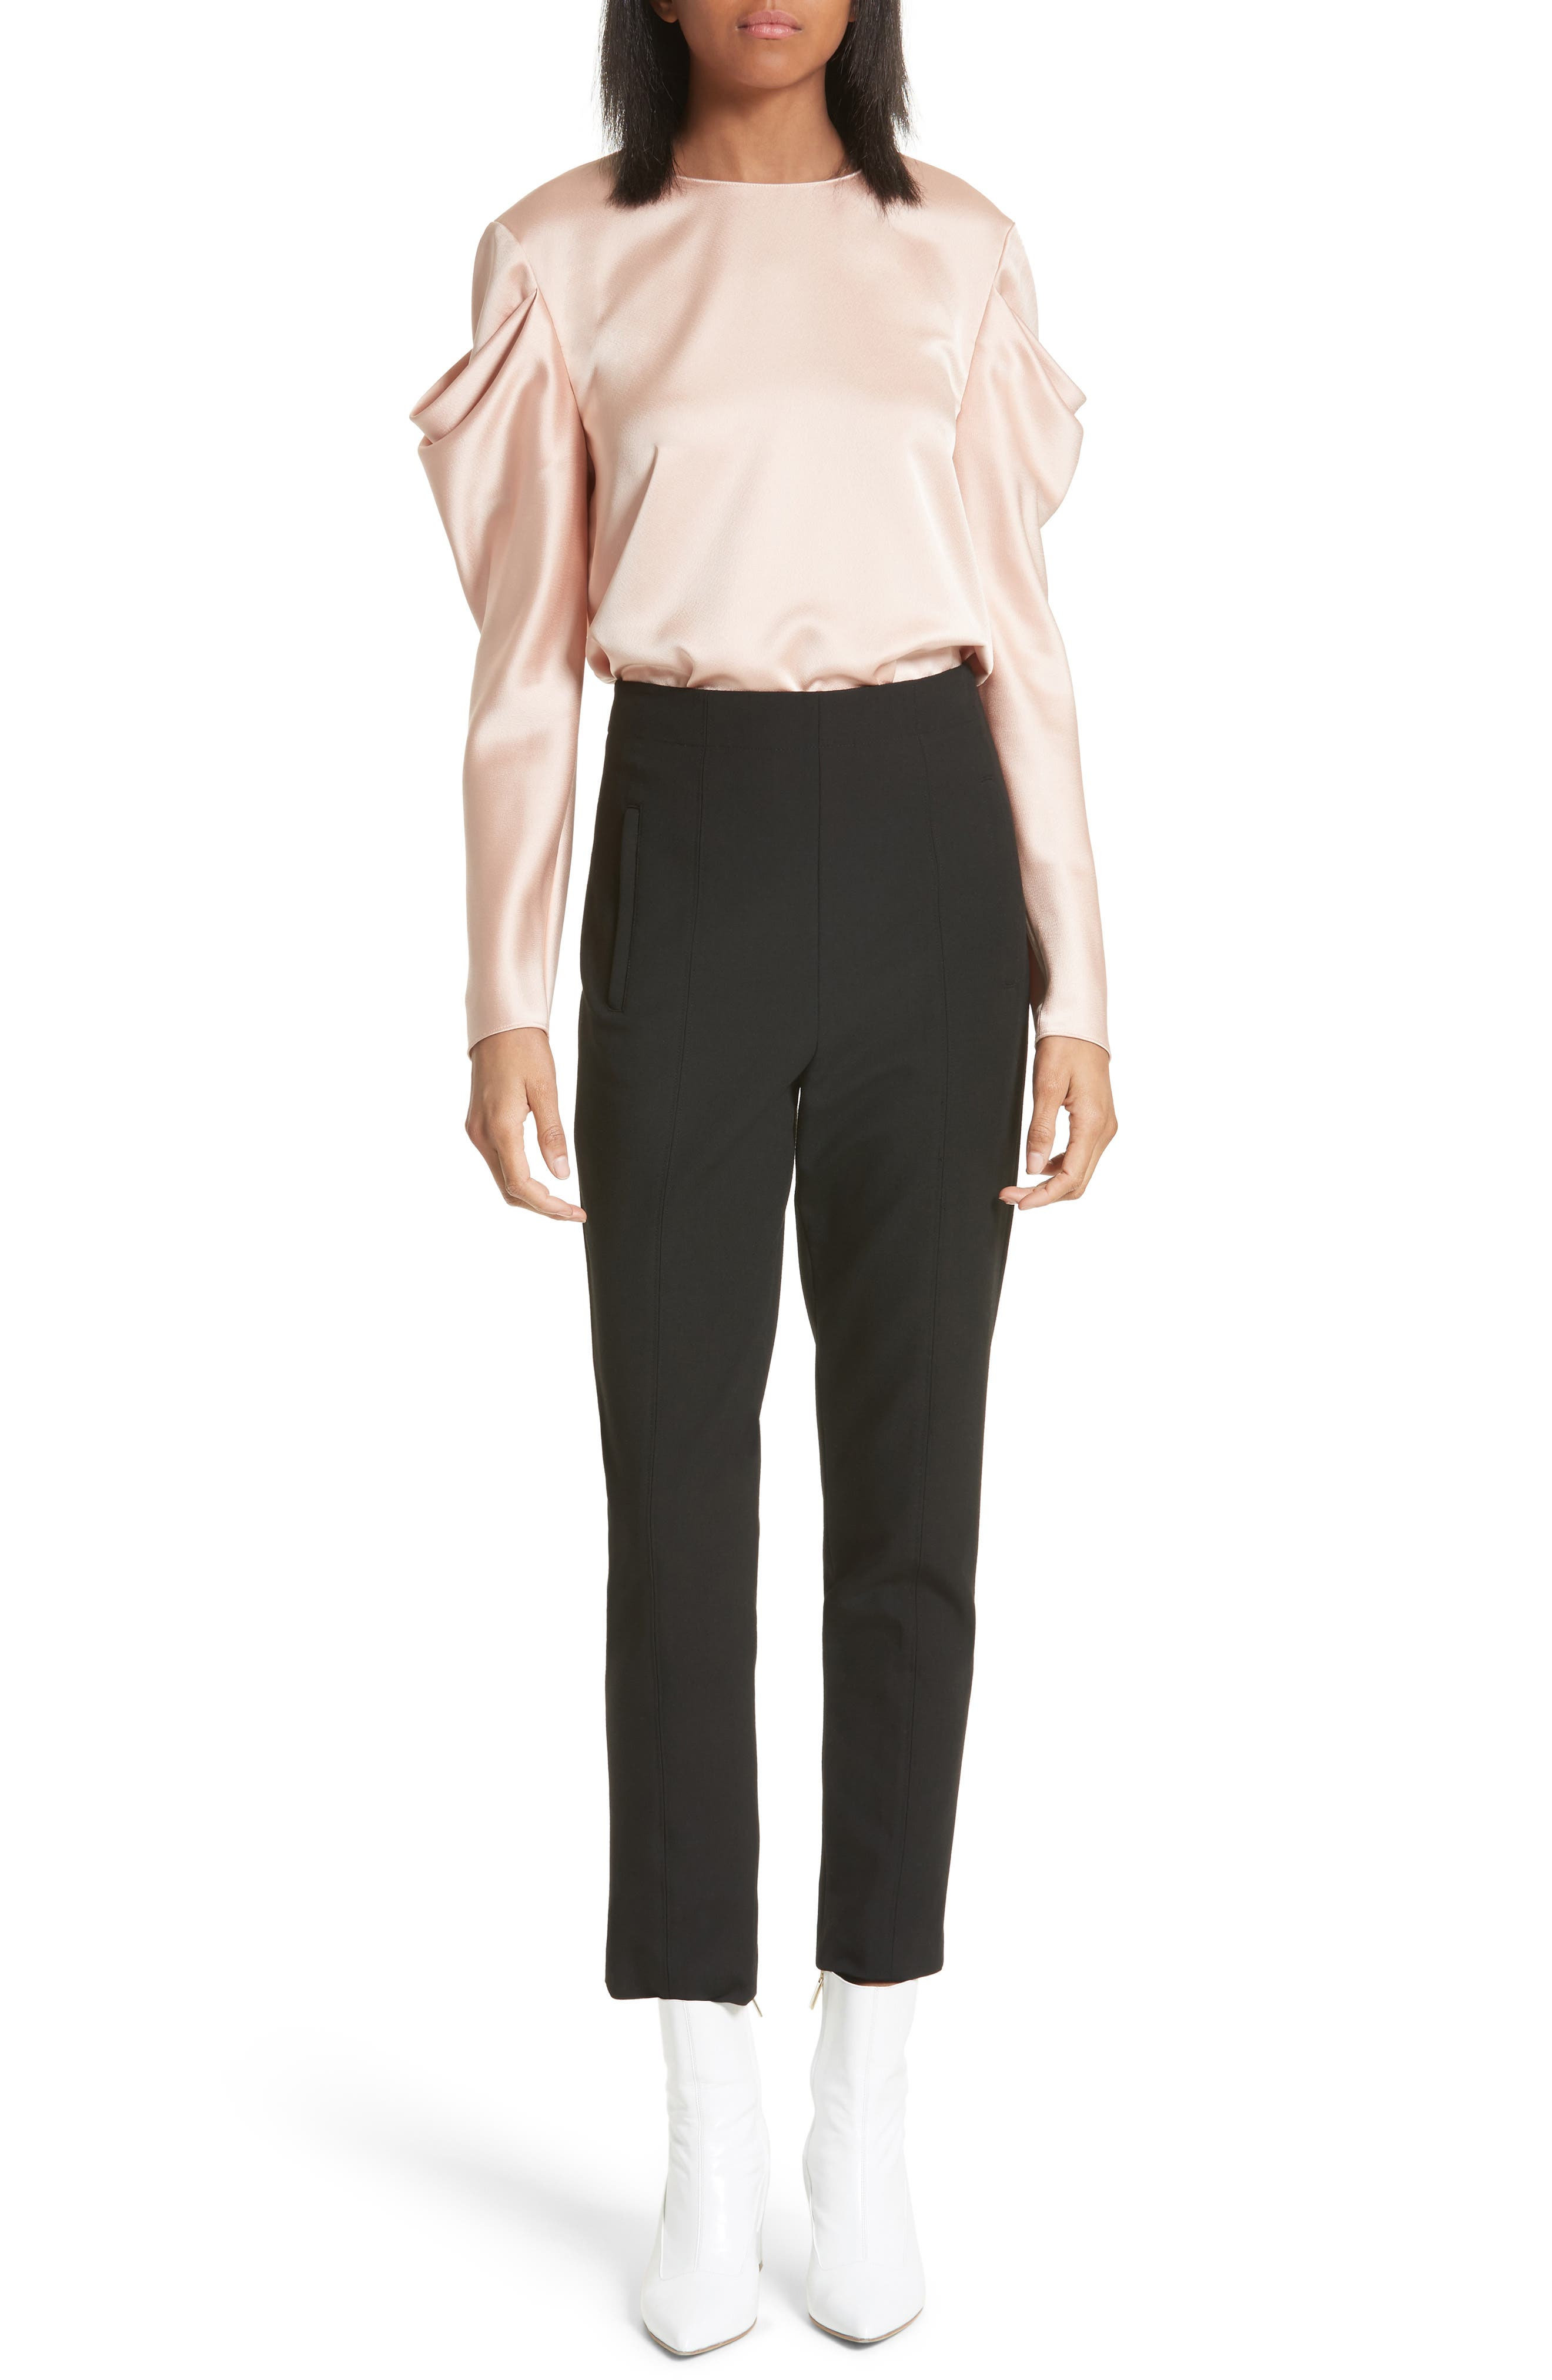 Tibi Wear To Where Looks For Every Occasion Women Nordstrom Elaine Teal Top Leux Studio L